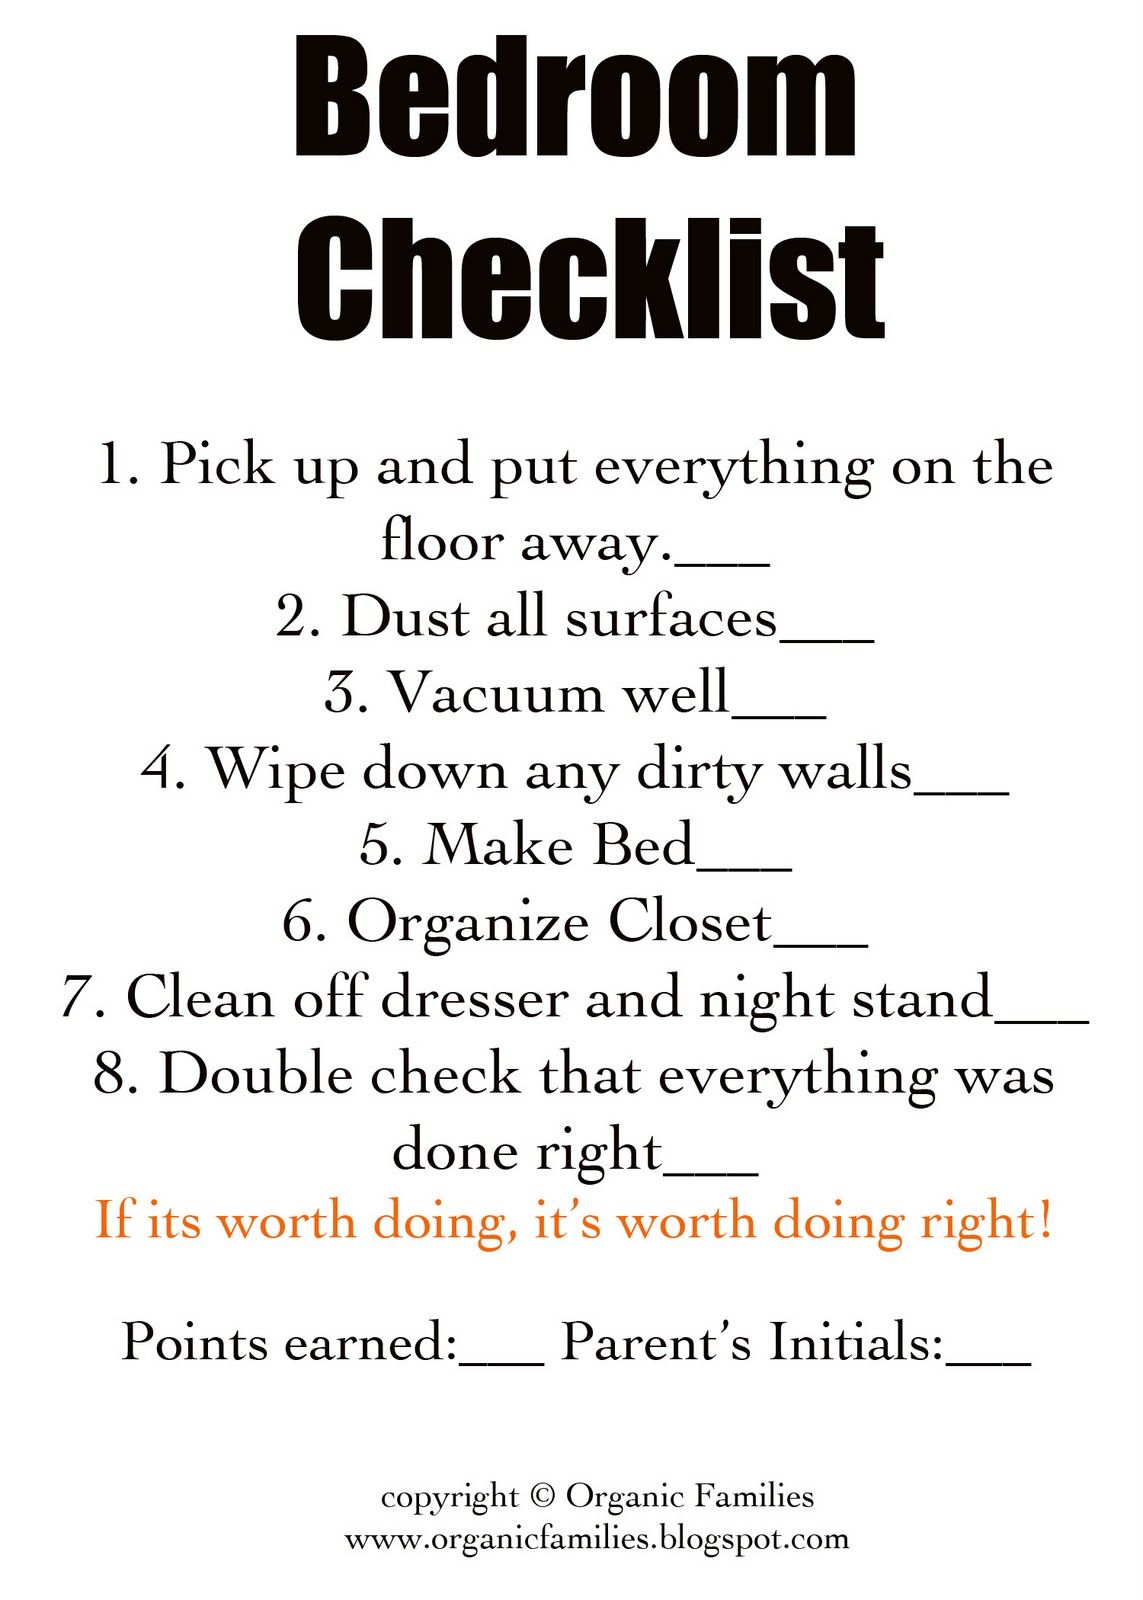 How do I stay organized? Let me count the ways... Chore